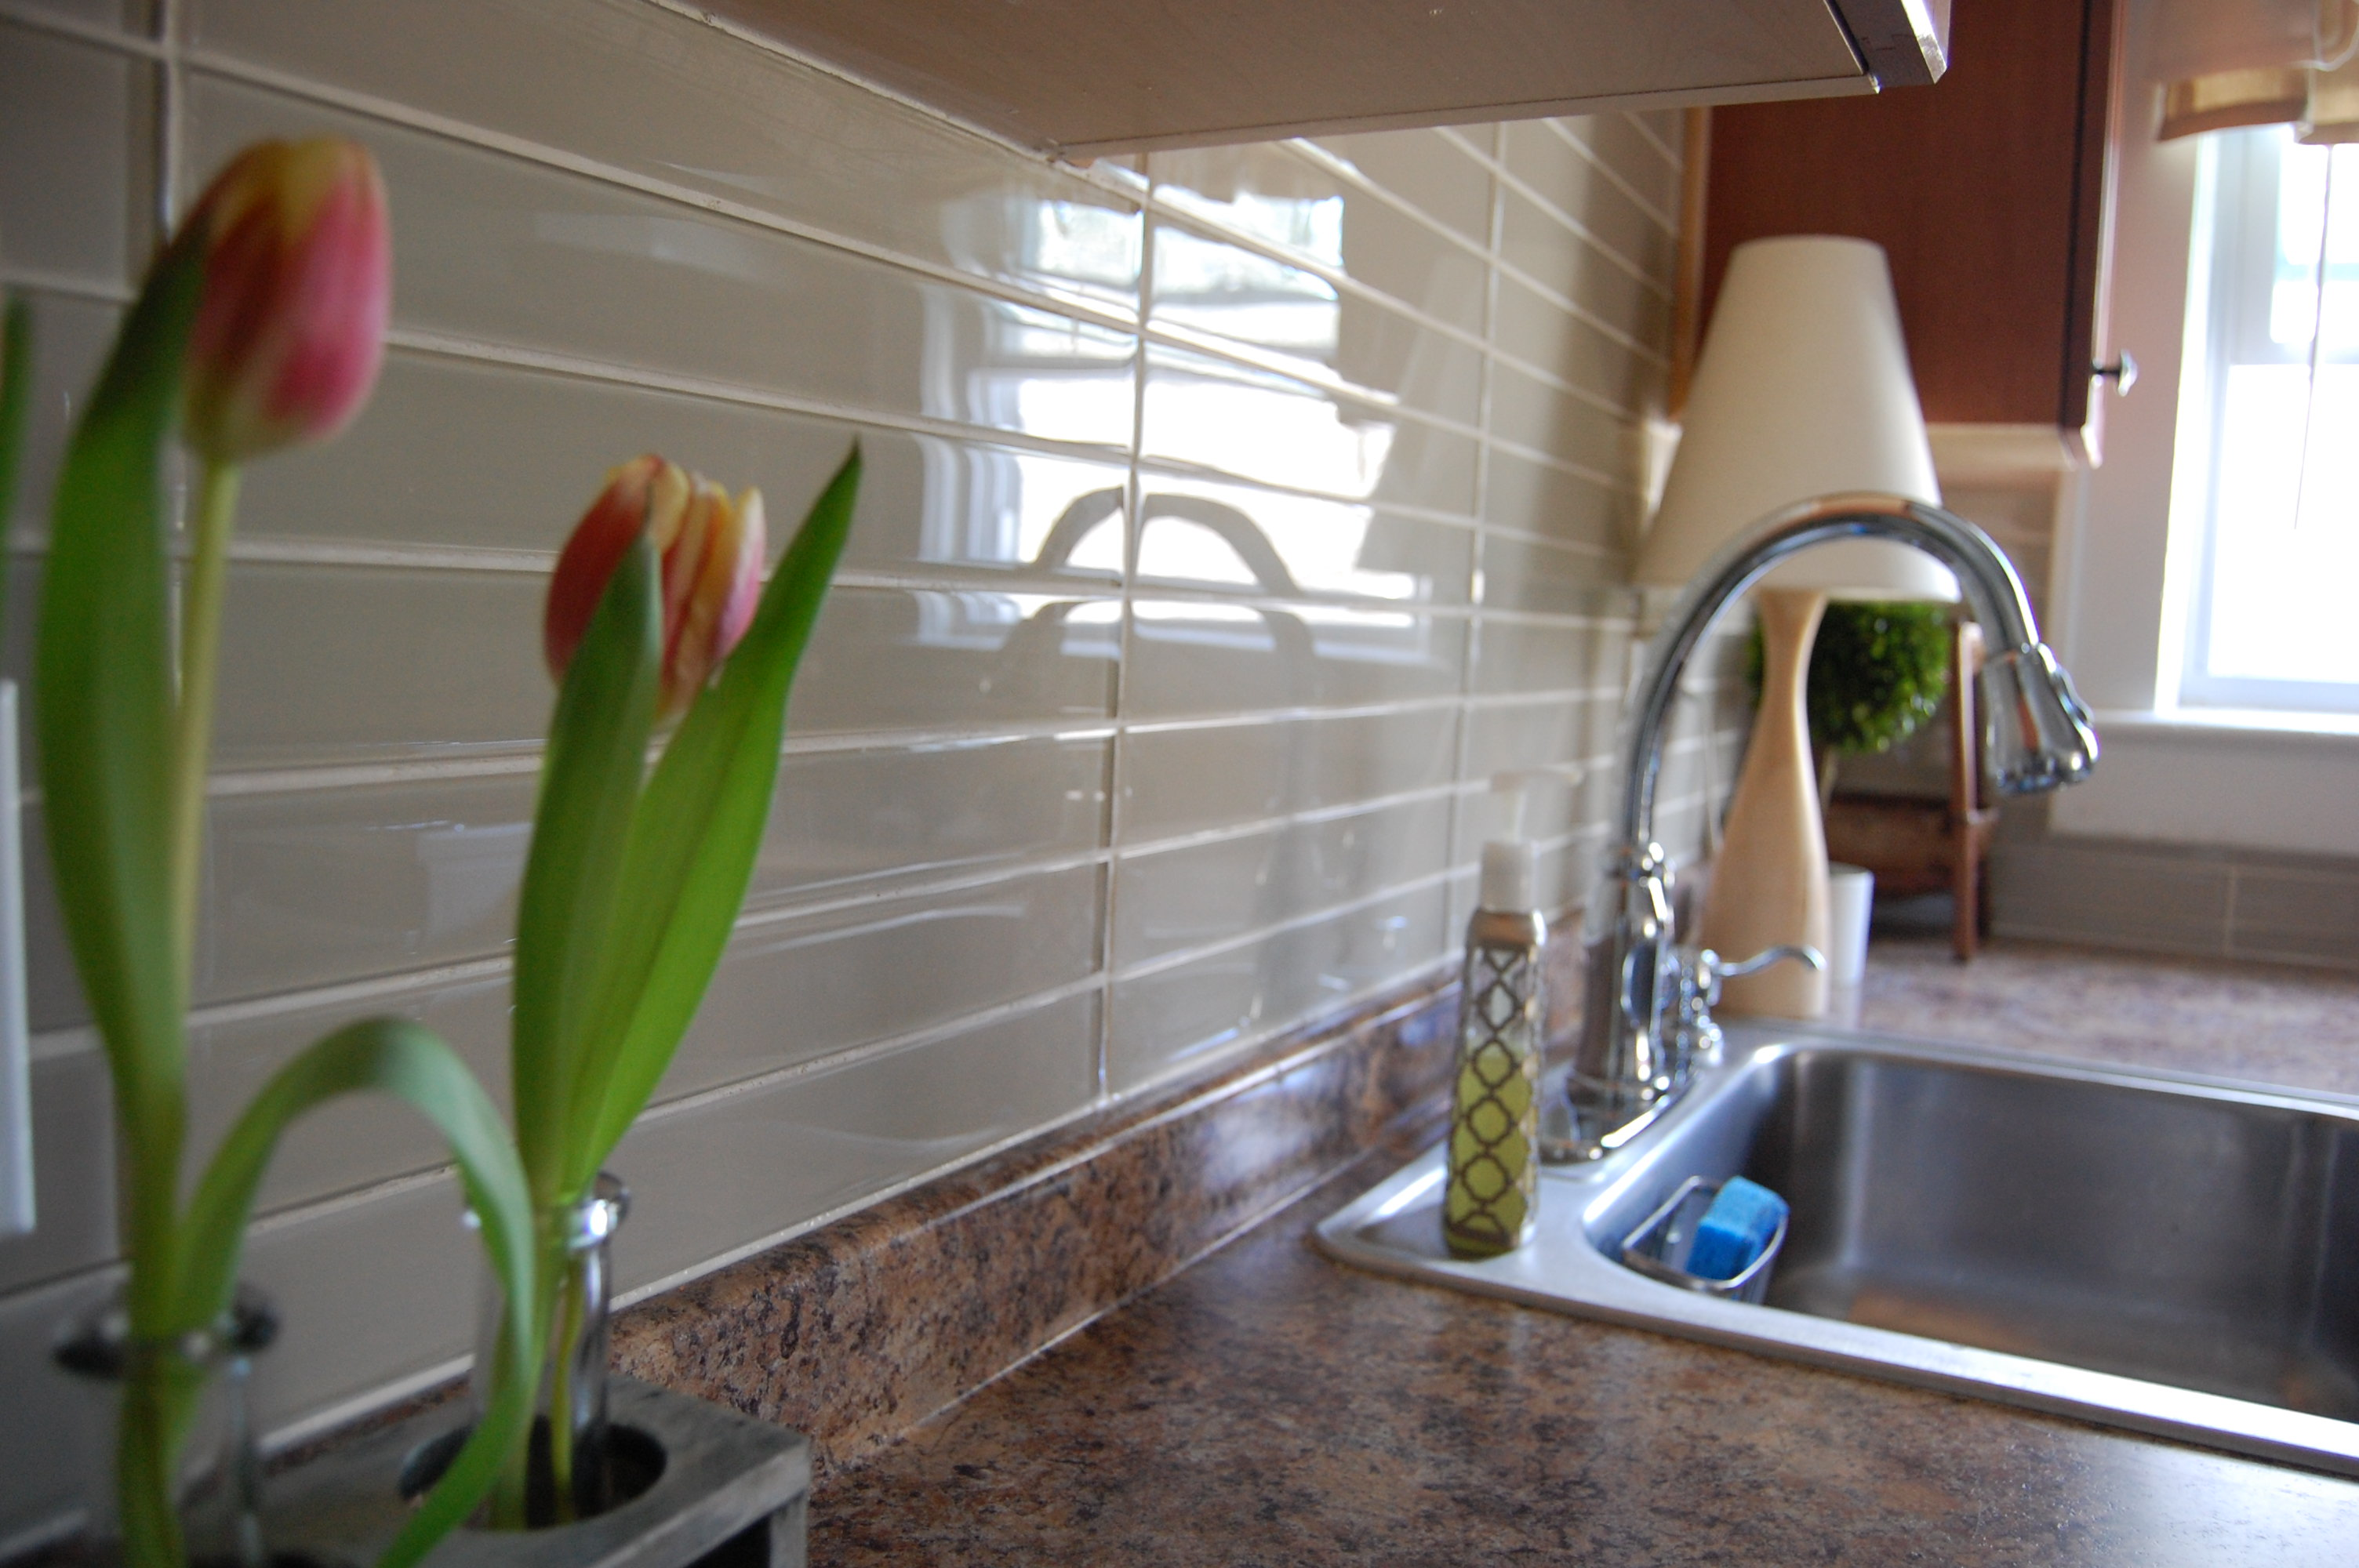 dsc with is glass tile backsplash too trendy